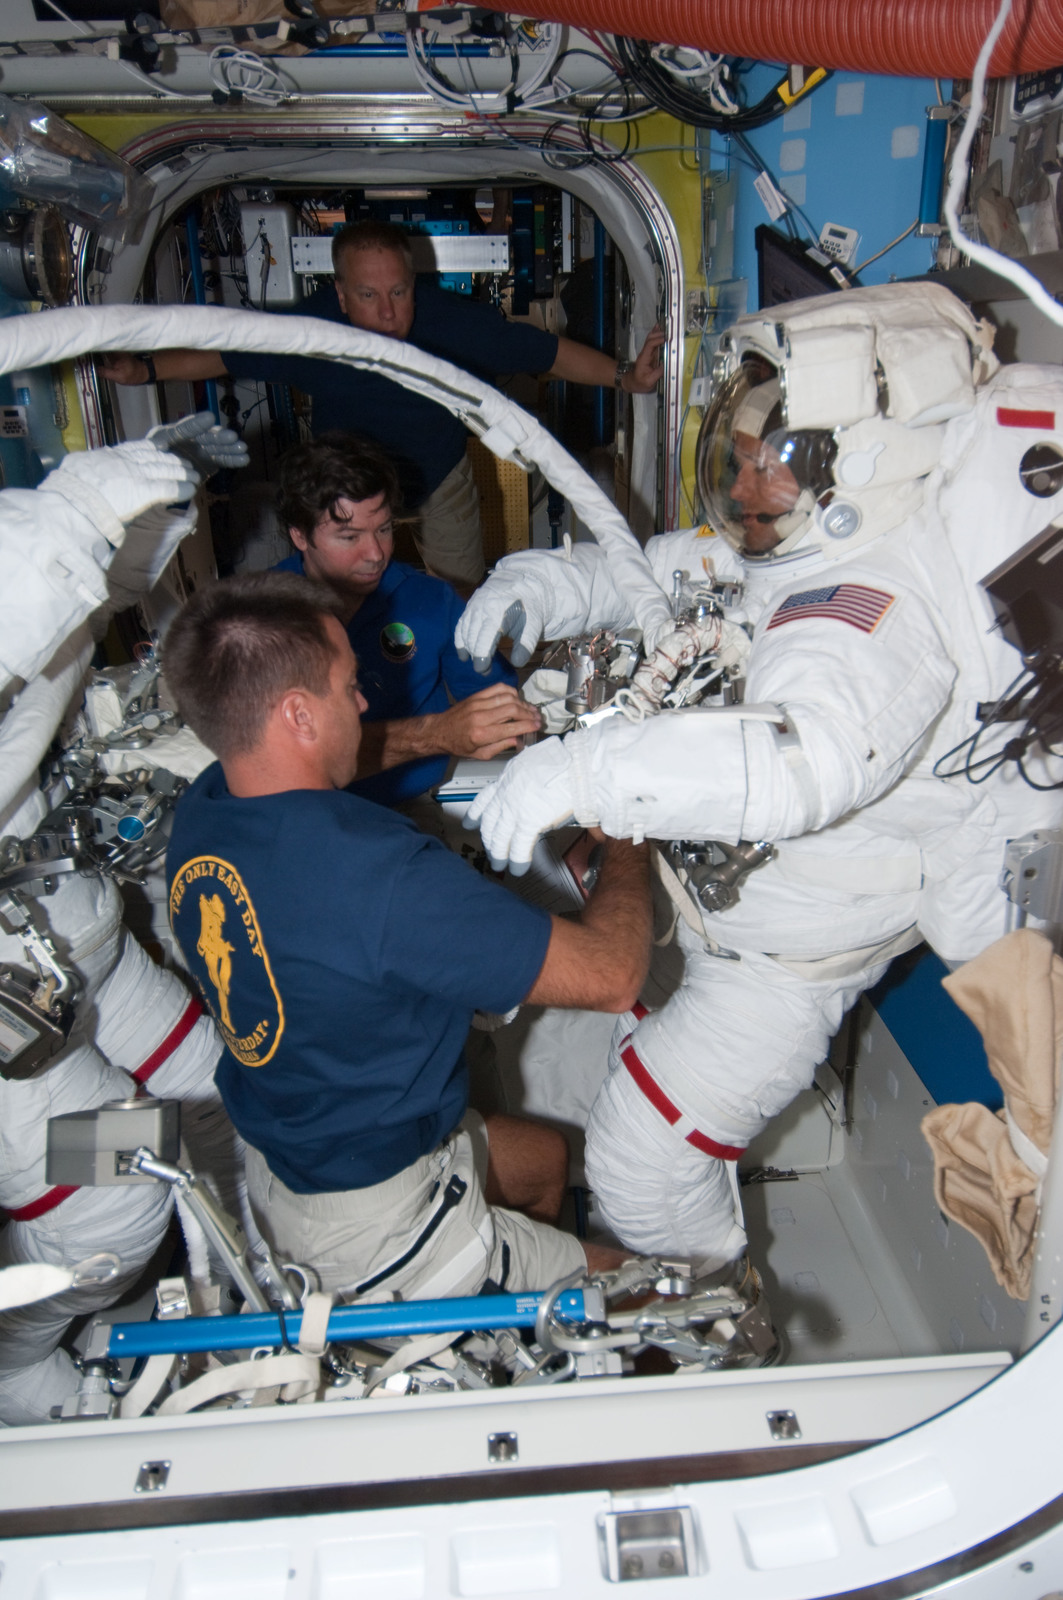 S127E007054 - STS-127 - Cassidy and Barratt assists Marshburn with his EMU during Joint Operations